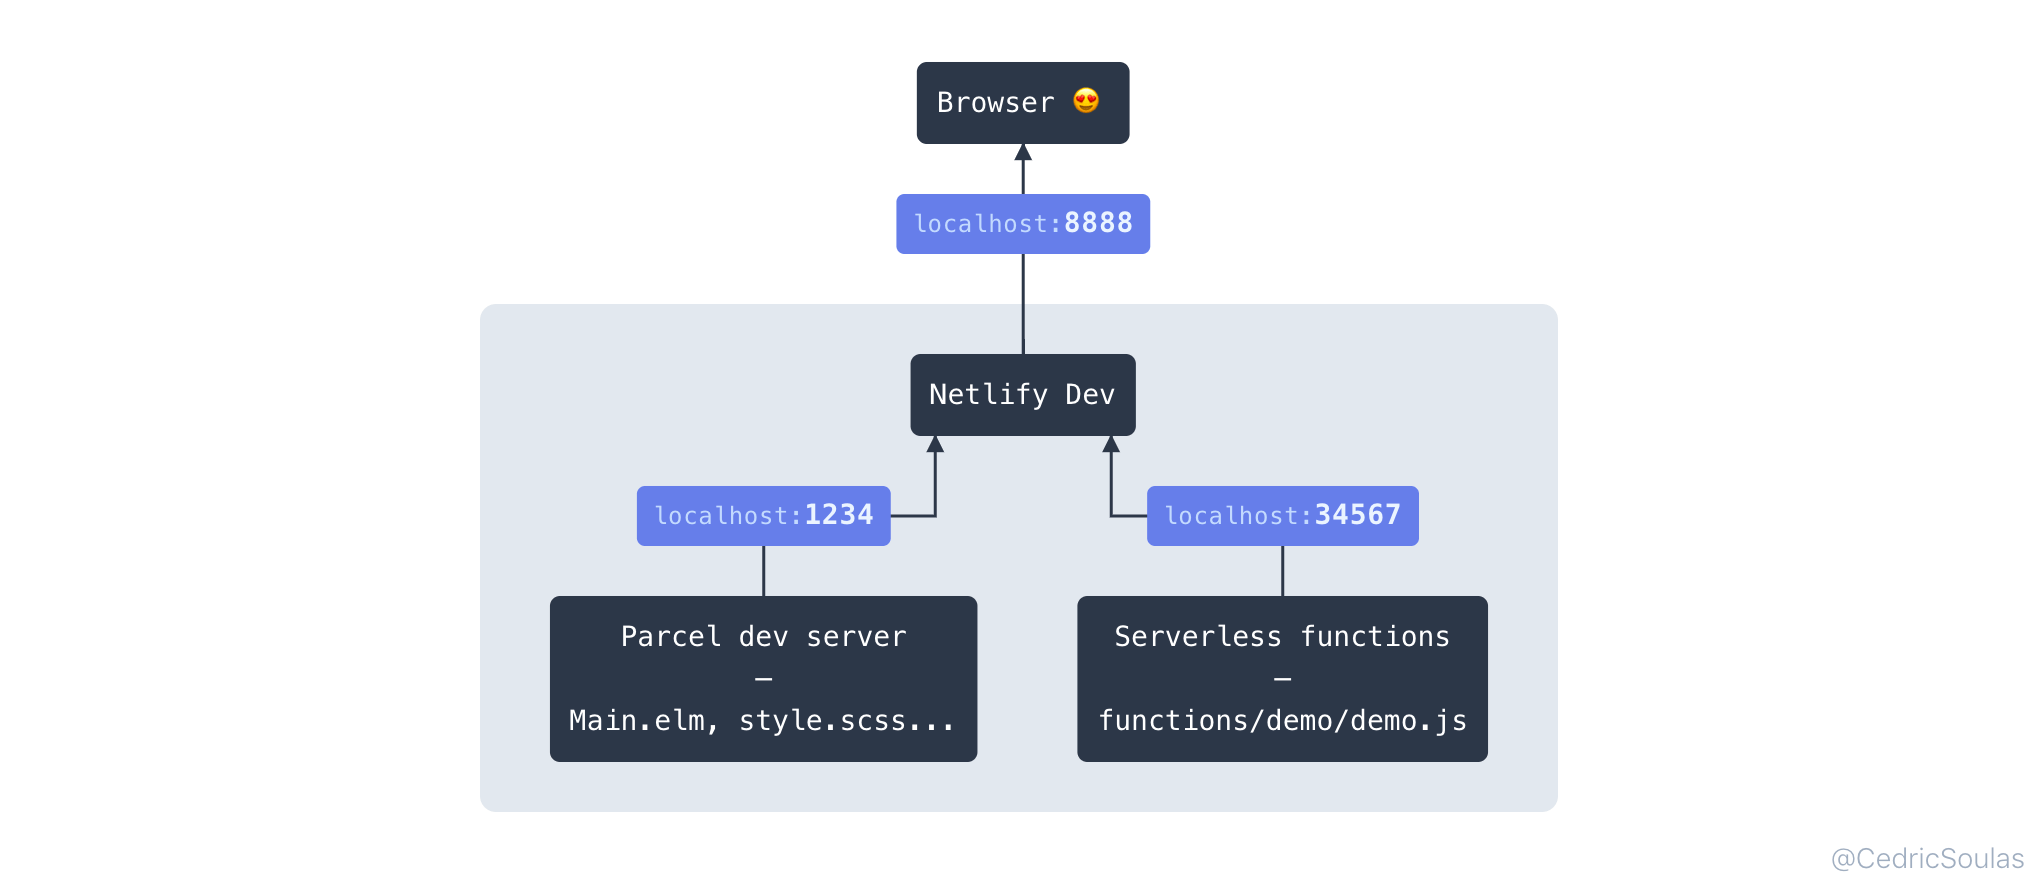 Netlify Dev on top of Parcel and serverless functions